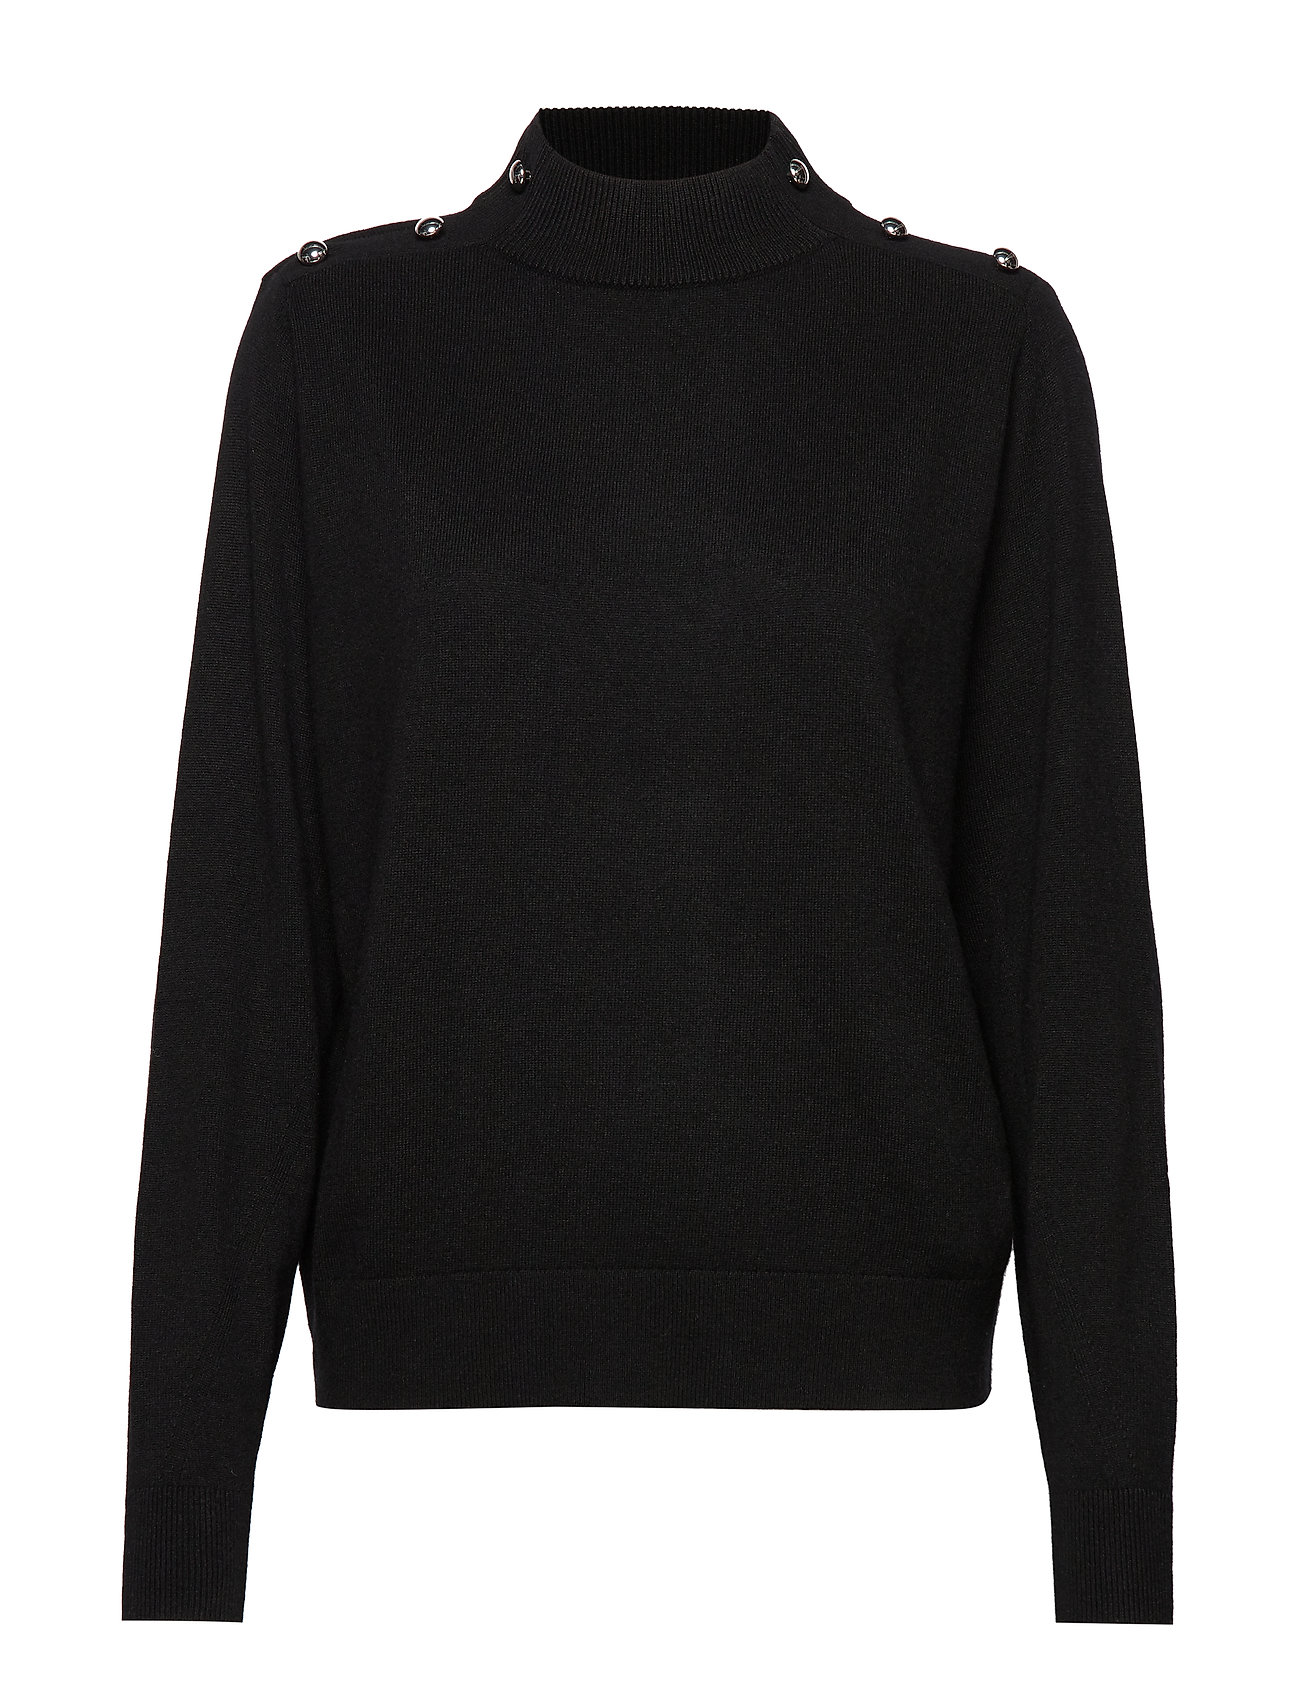 Michael Kors DOME TNK LS SWTR - BLACK